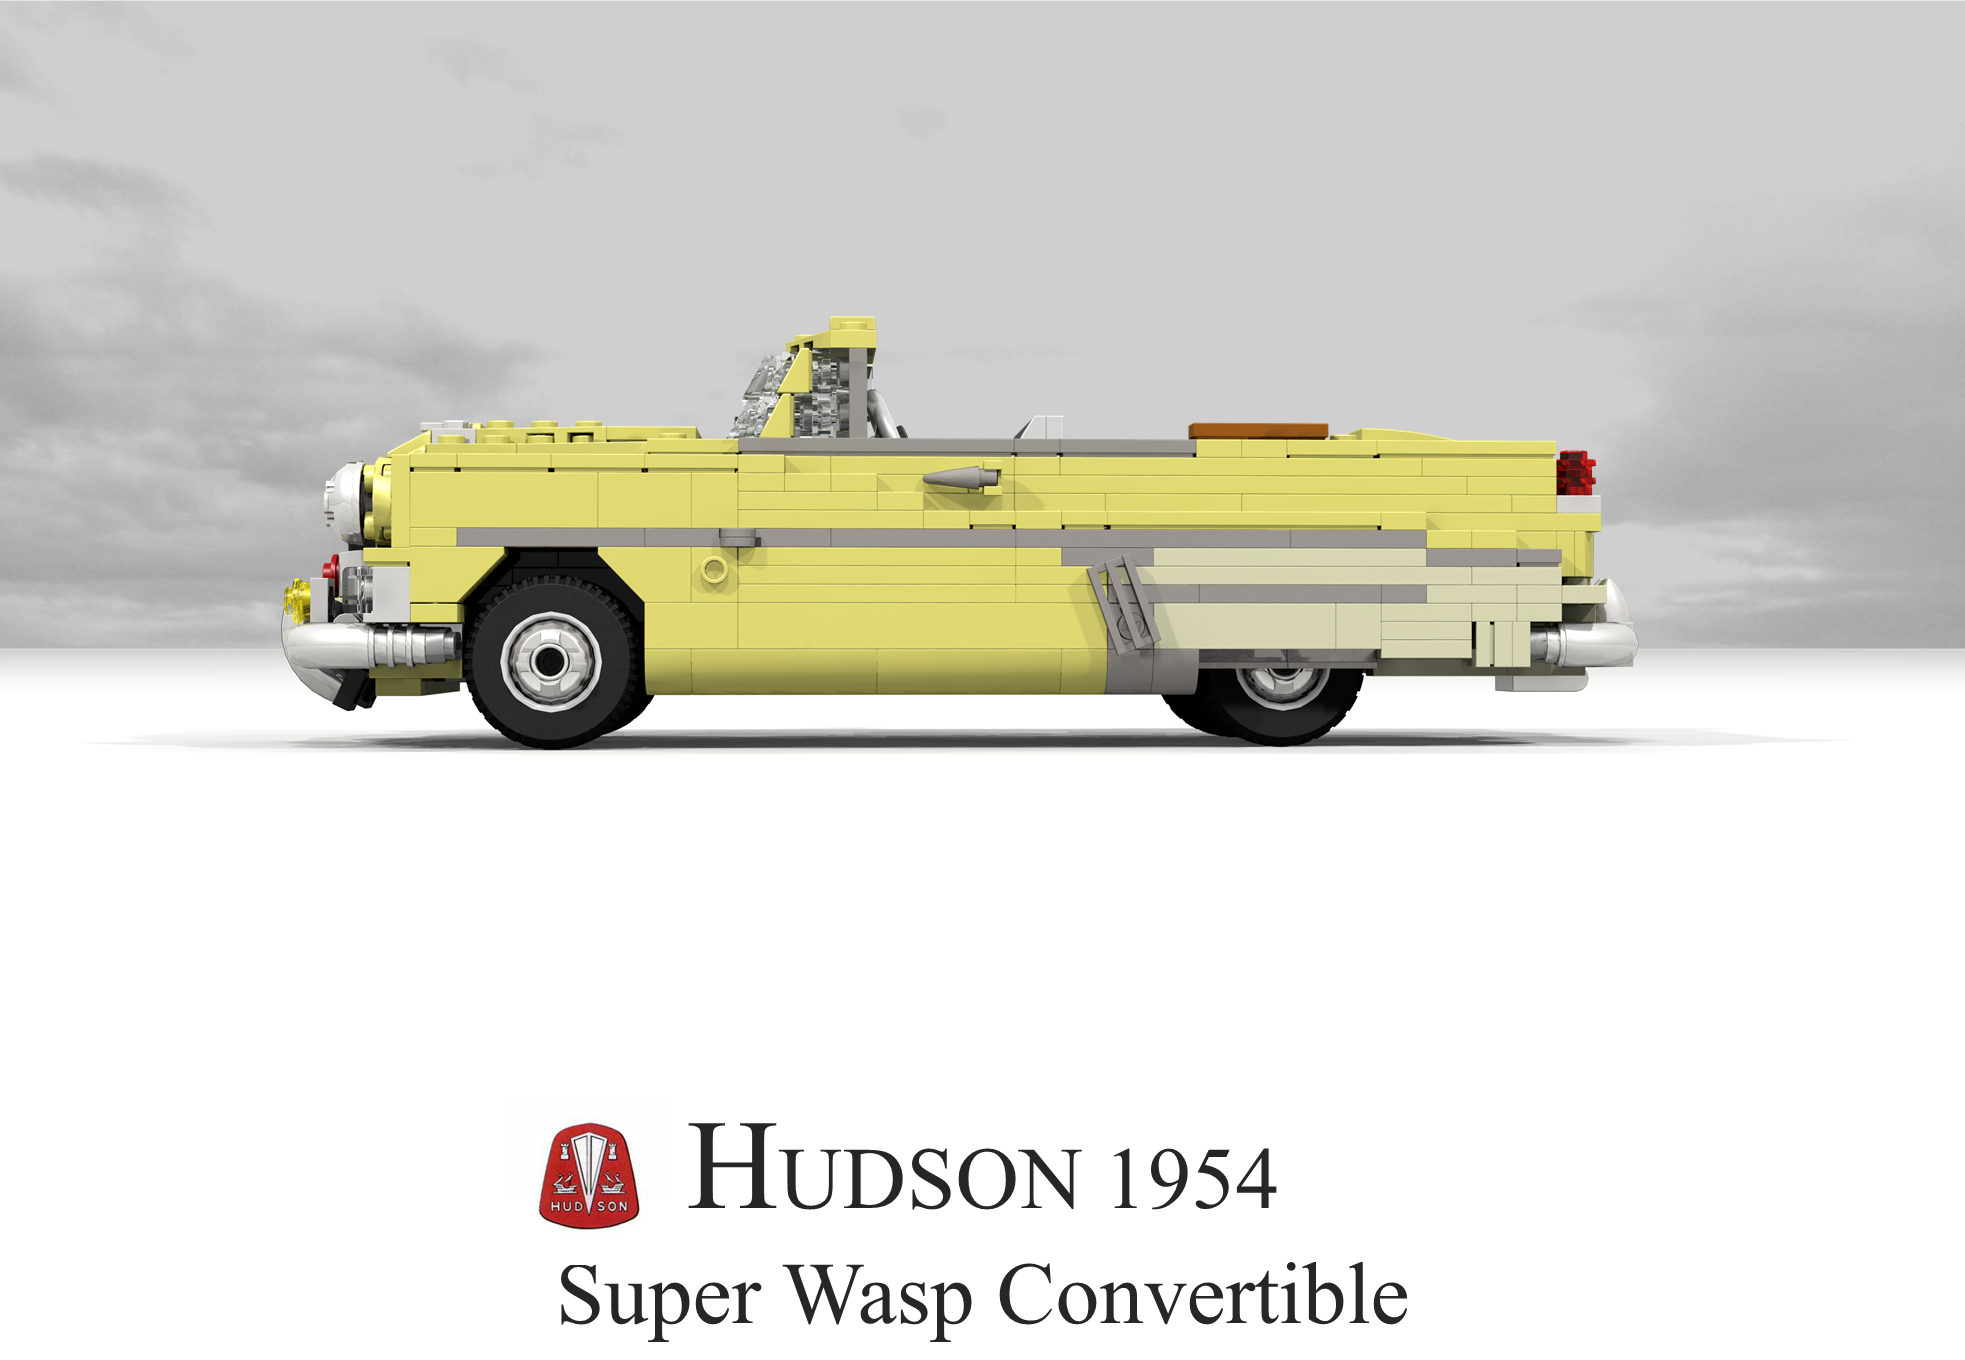 hudson_1954_super_wasp_convertible_03.png